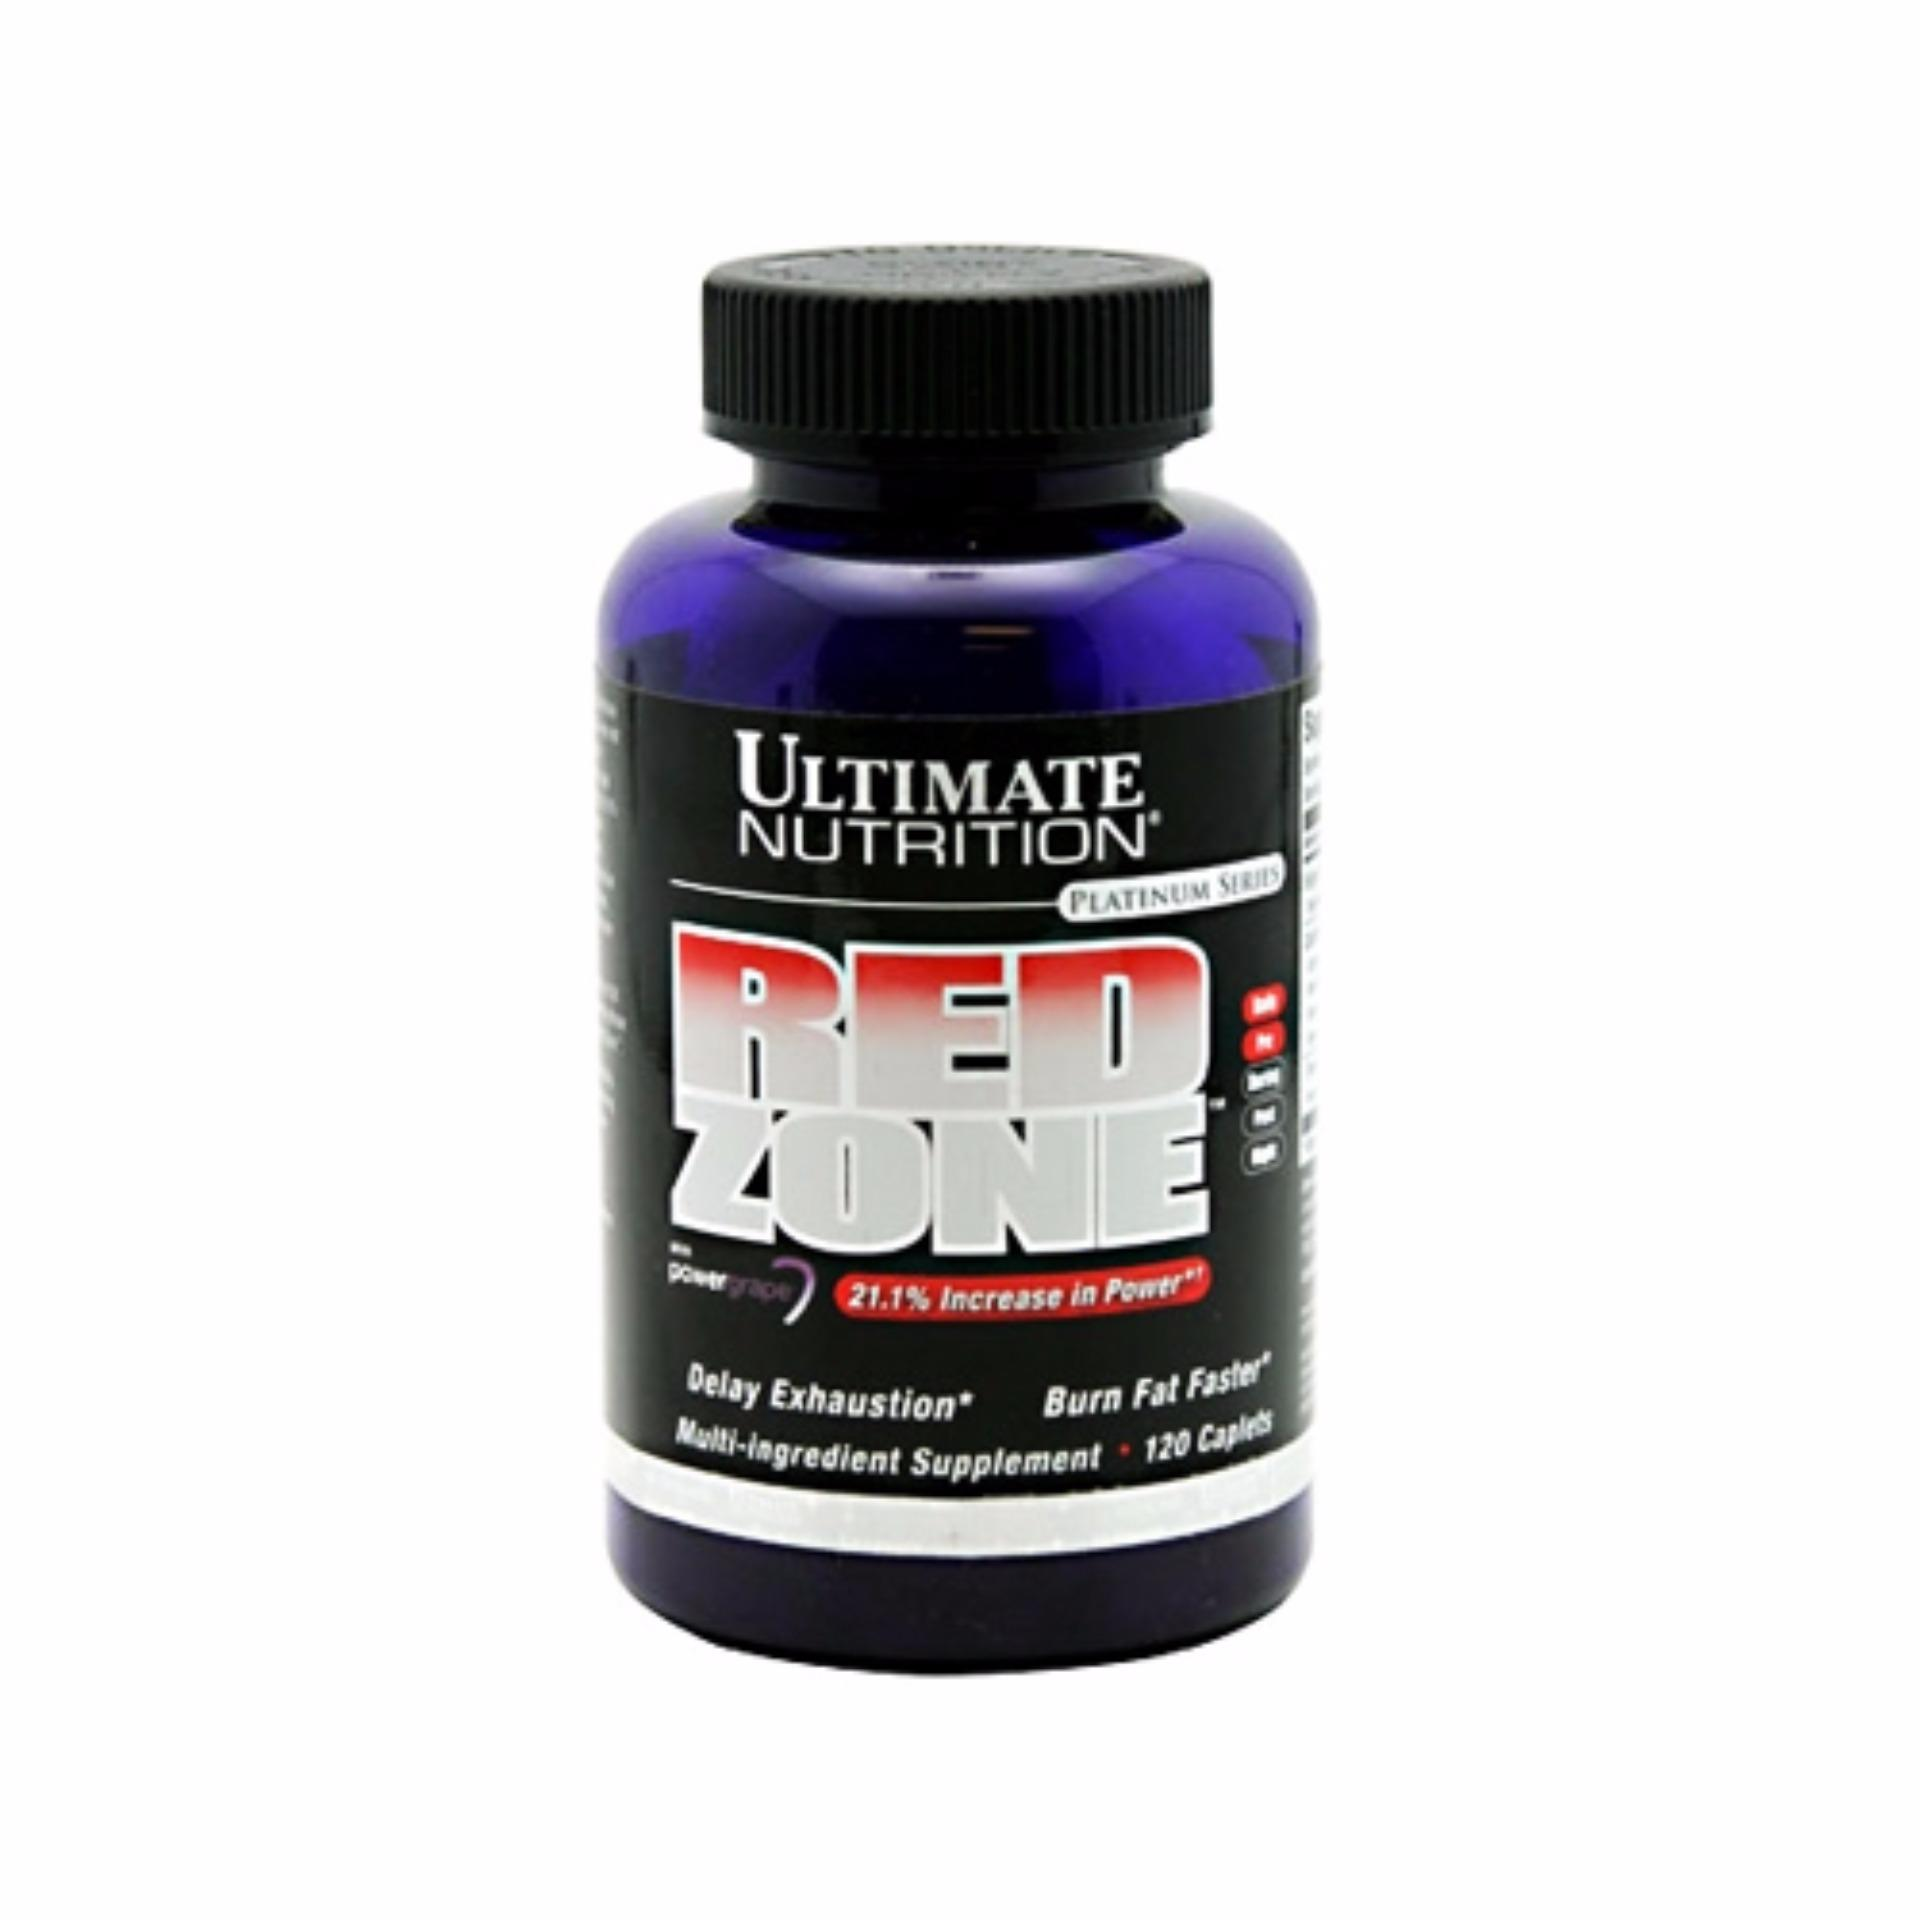 Ultimate Nutrition Carnebolic 37lb Orange Spec Dan Daftar Harga Beef Red Zone Isi 120 Kapsul